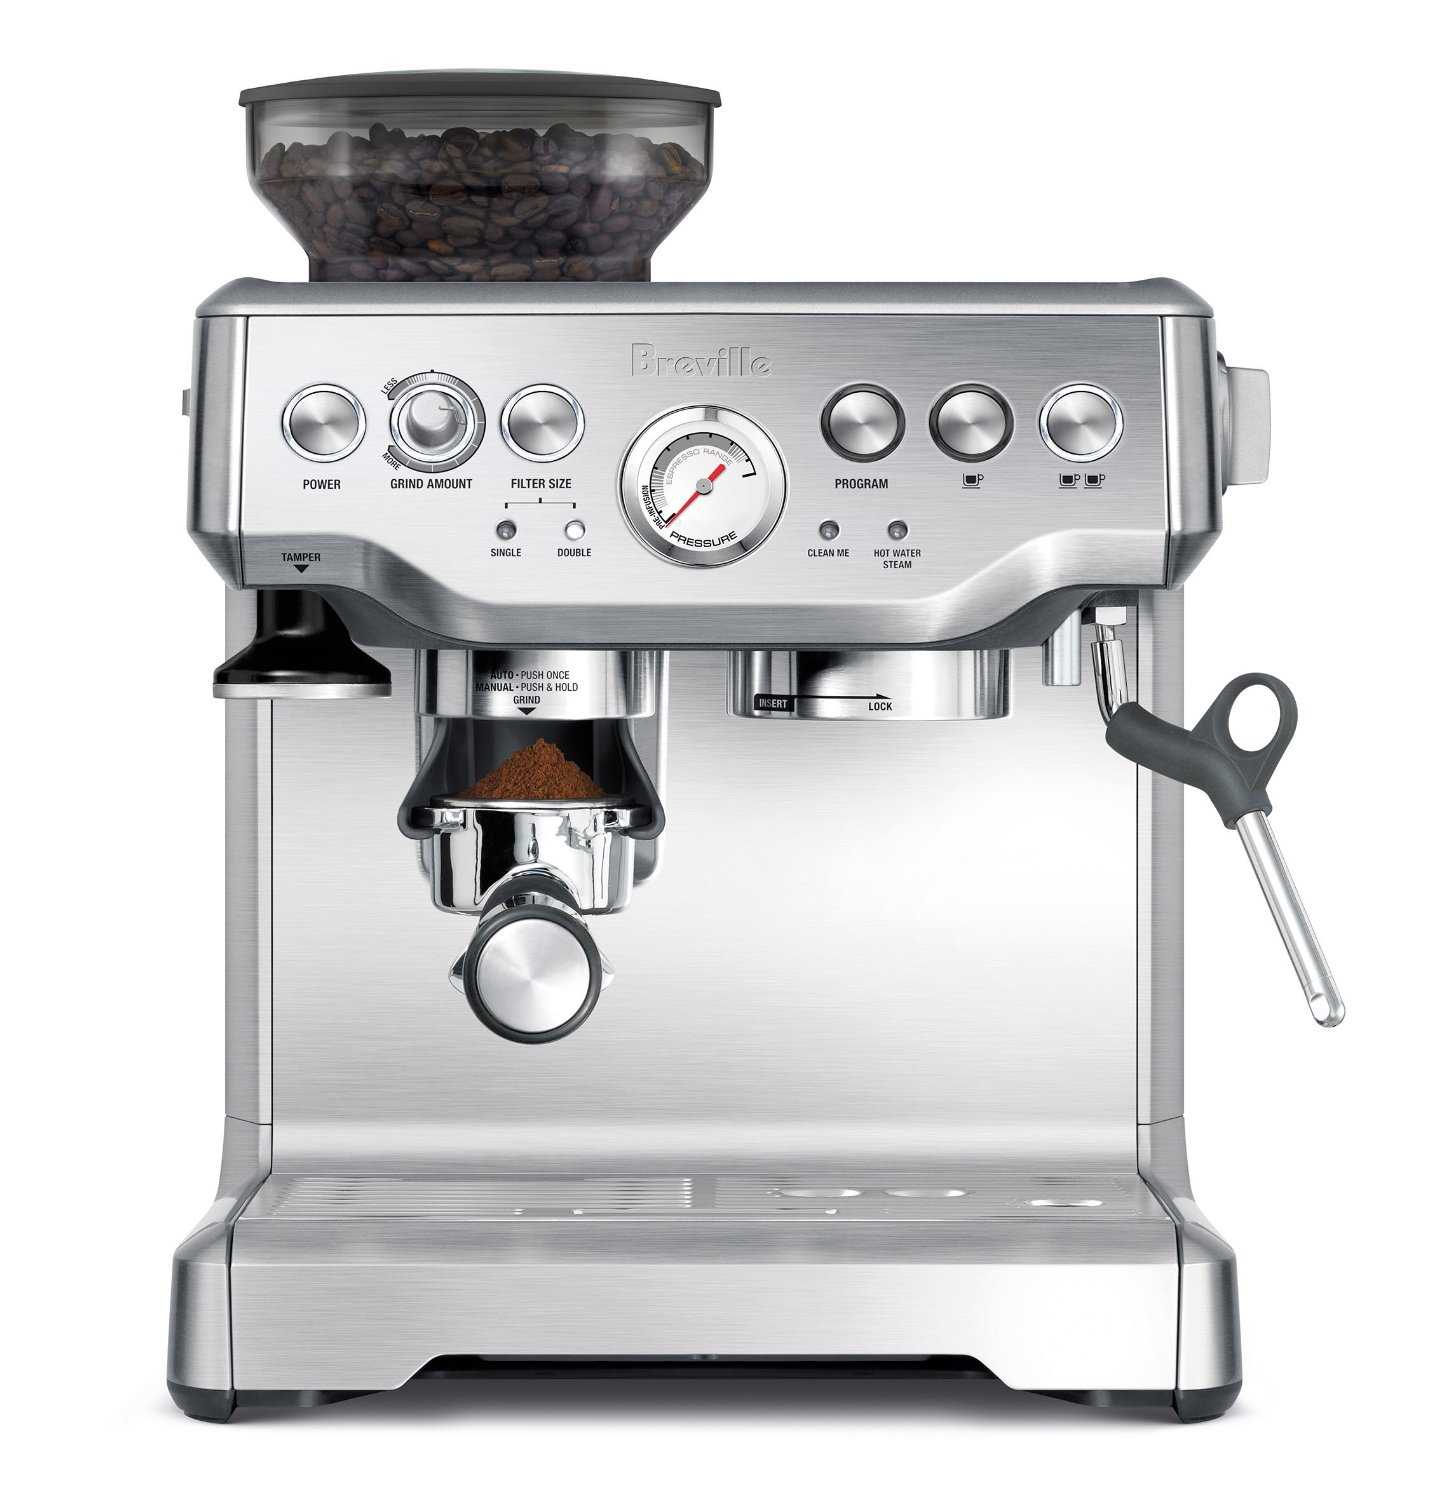 Top 10 Best Latte Machines of 2017